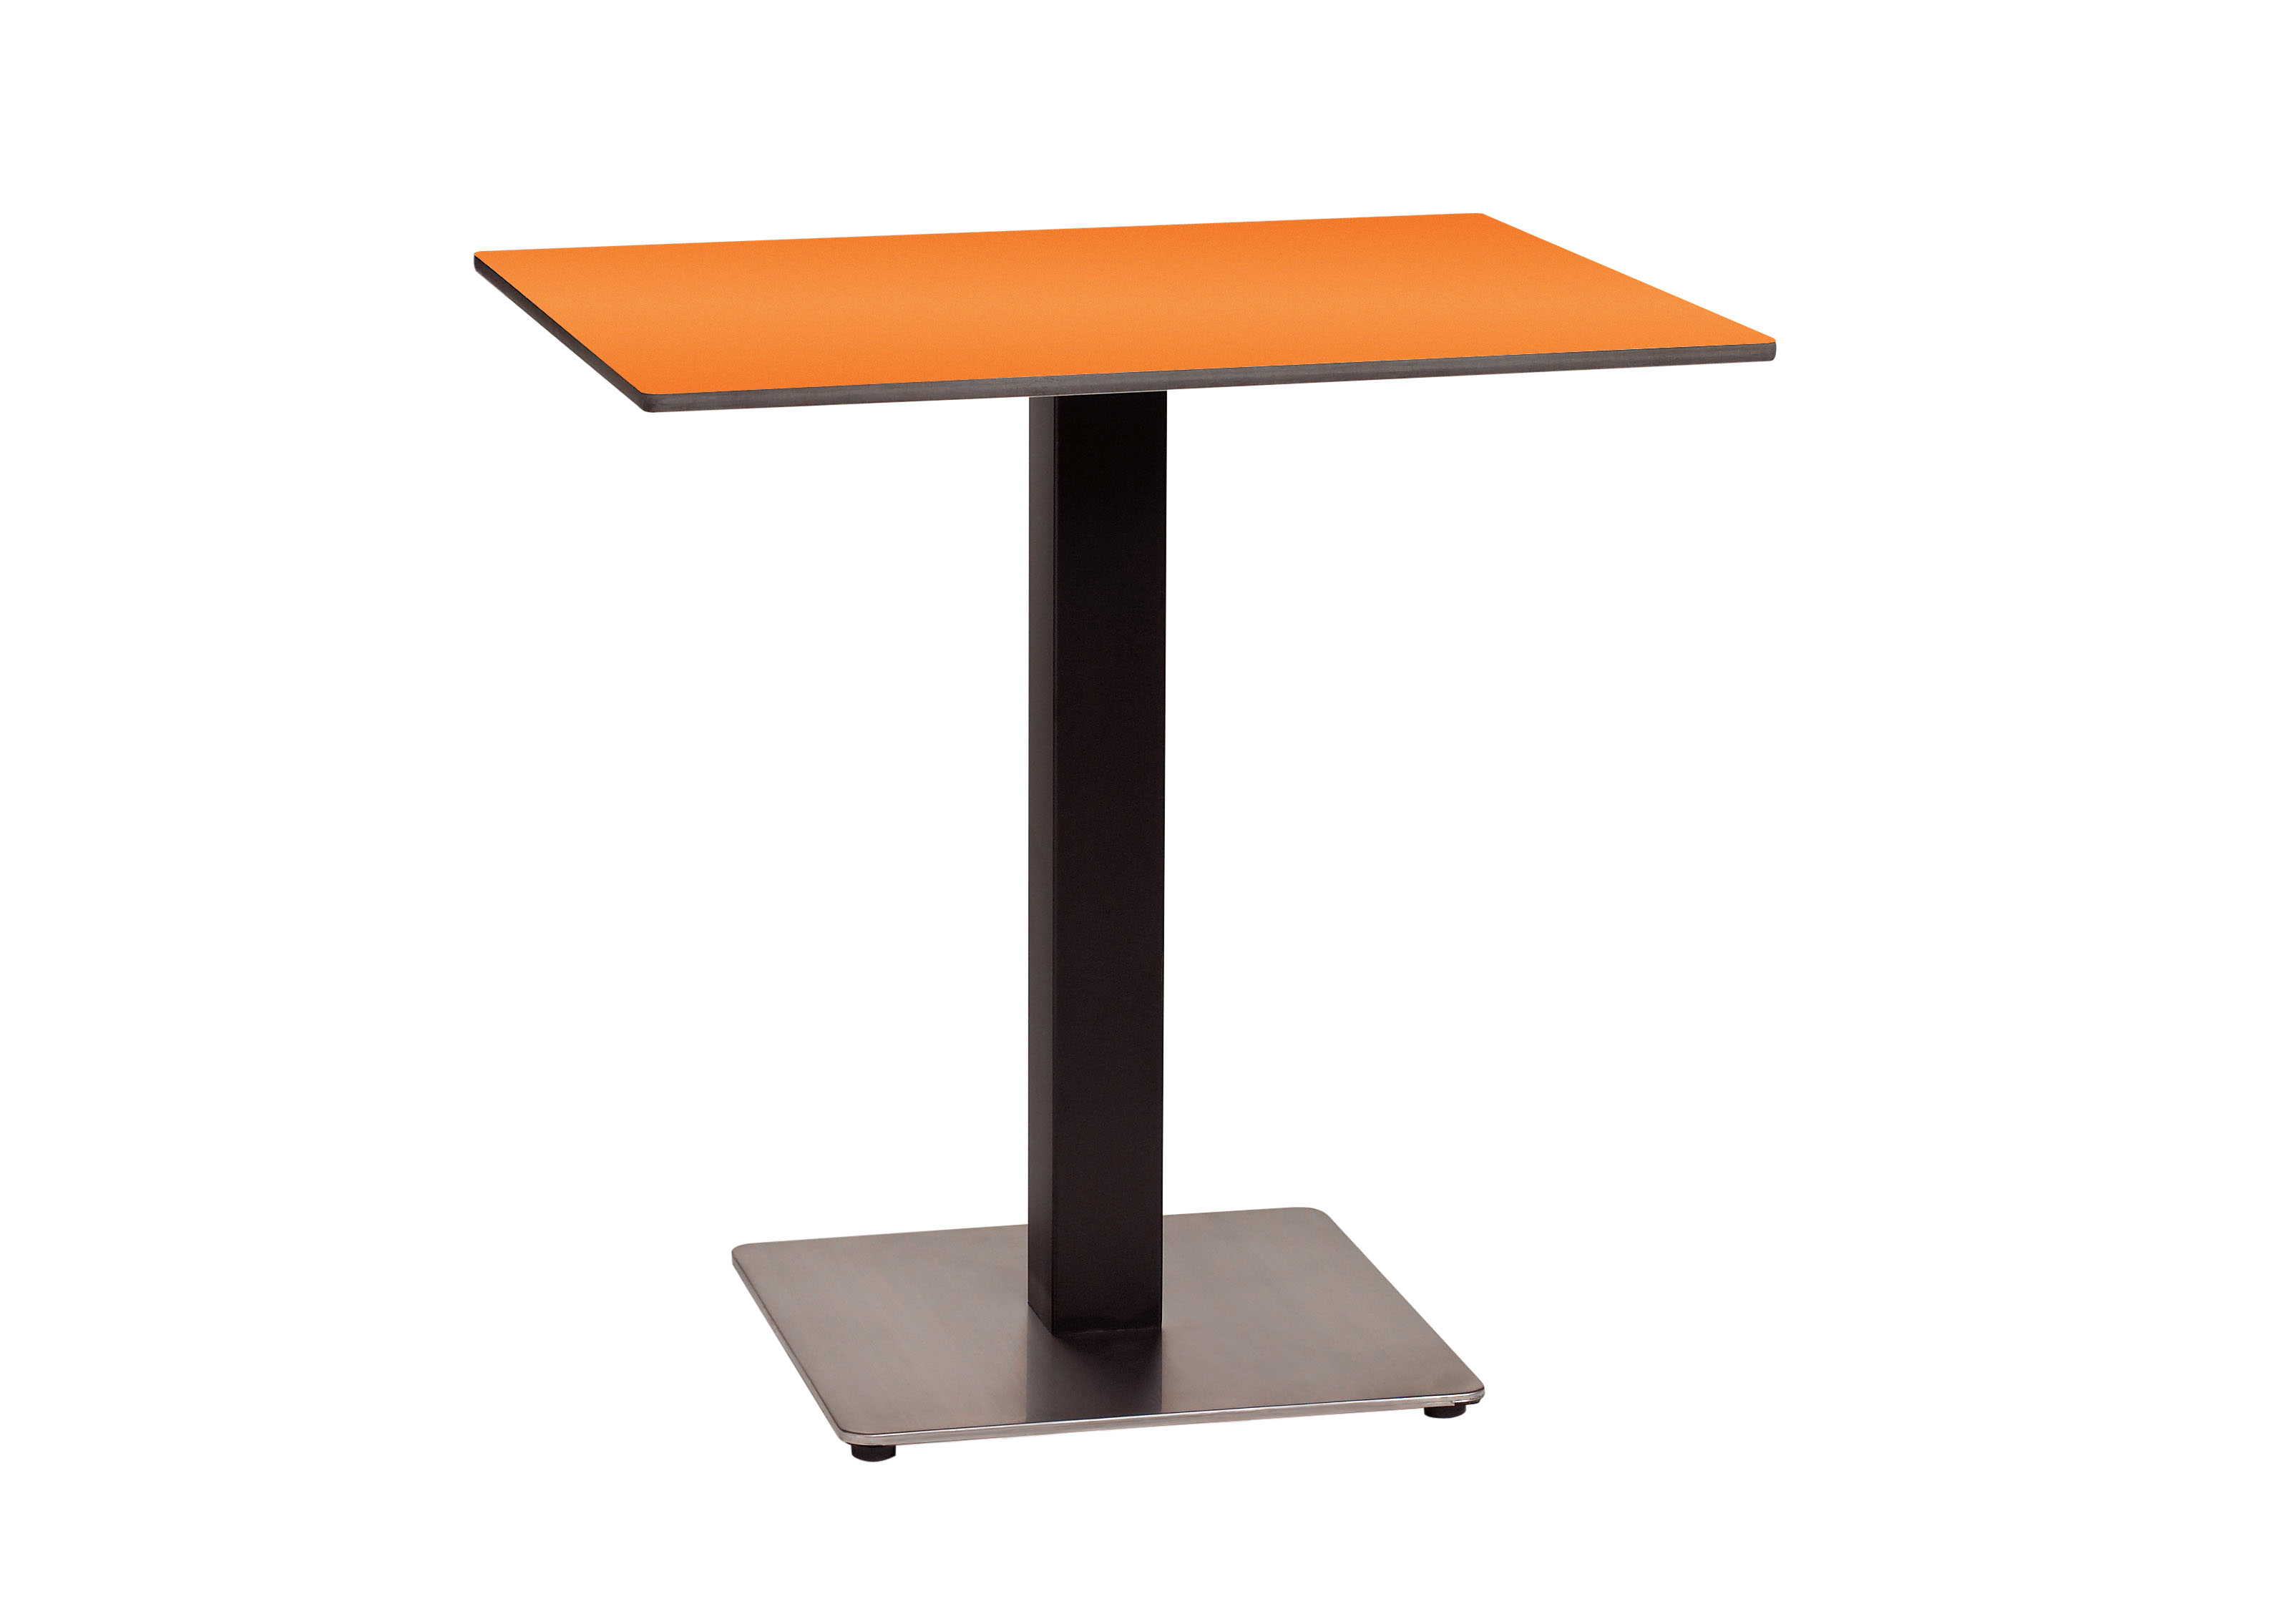 New 30 in square hpl table top with rails et t for Single leg dining table